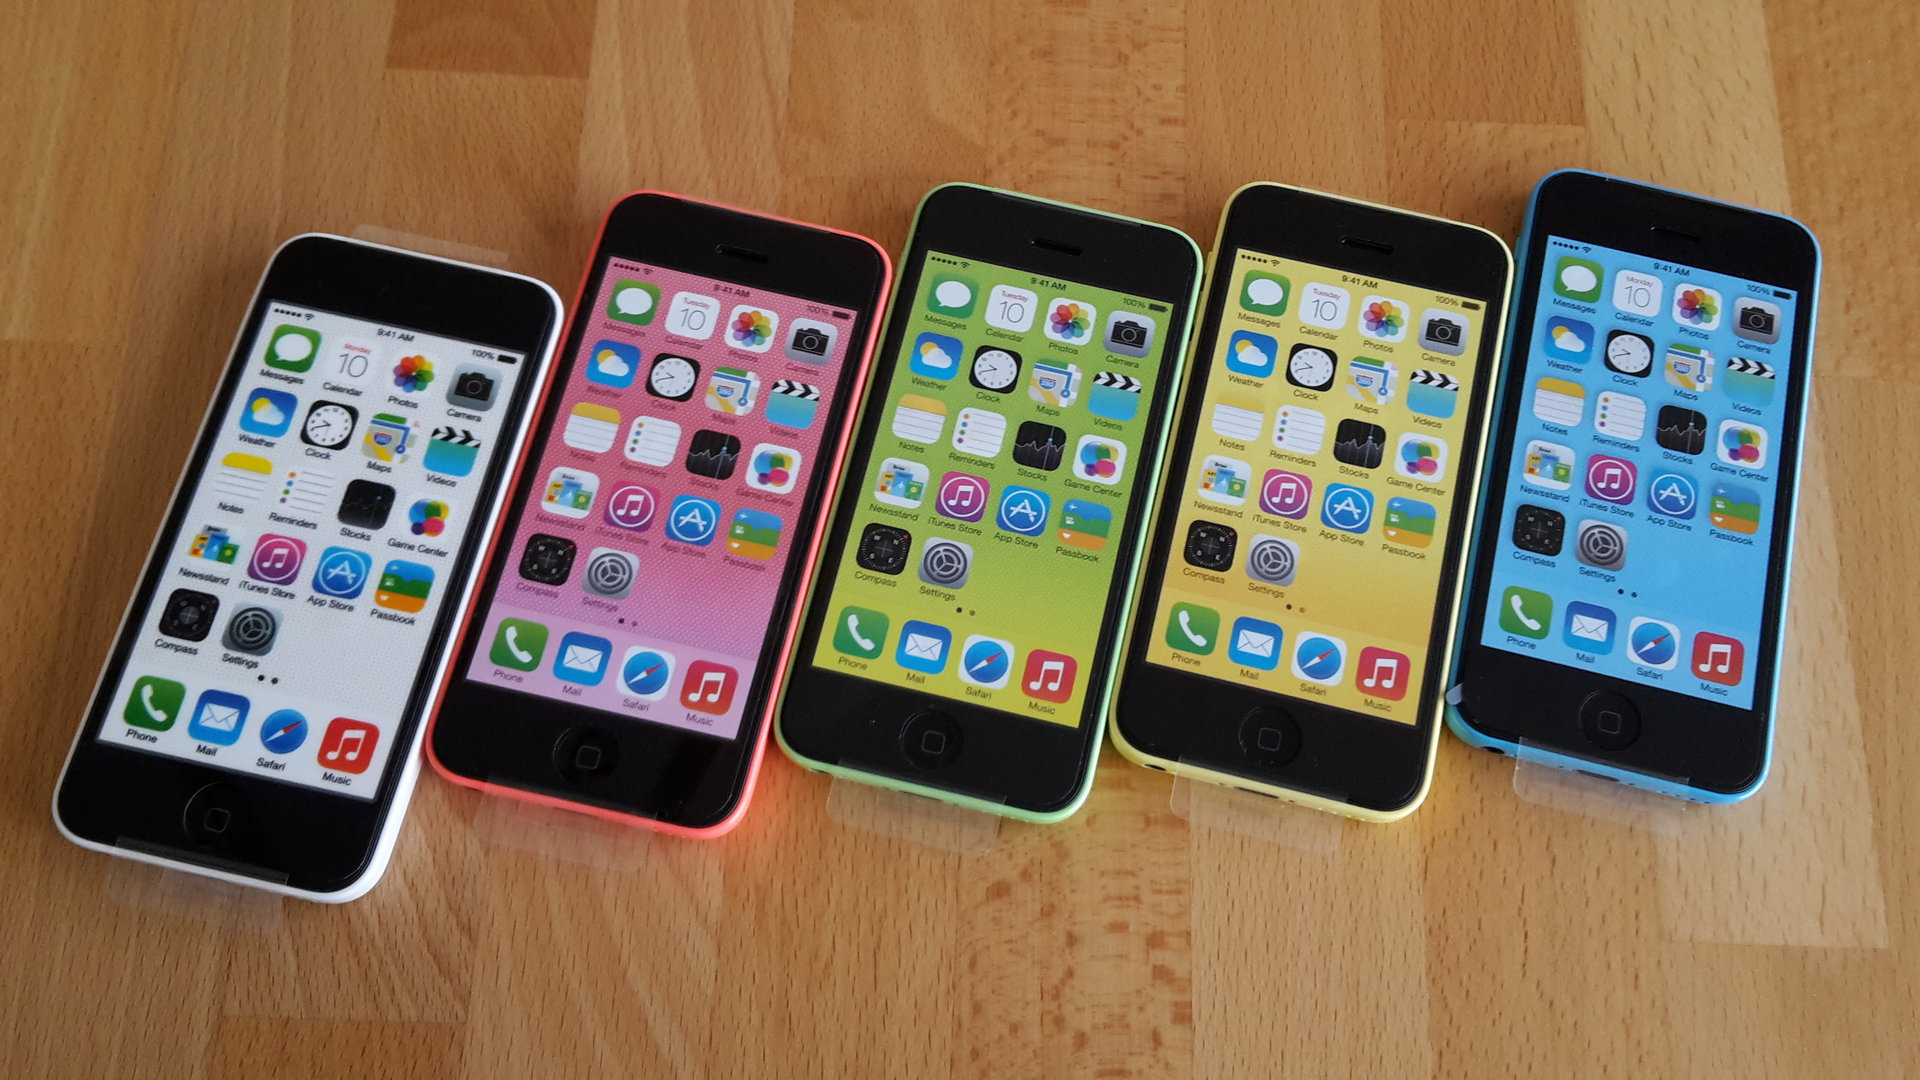 AppleiPhone5C